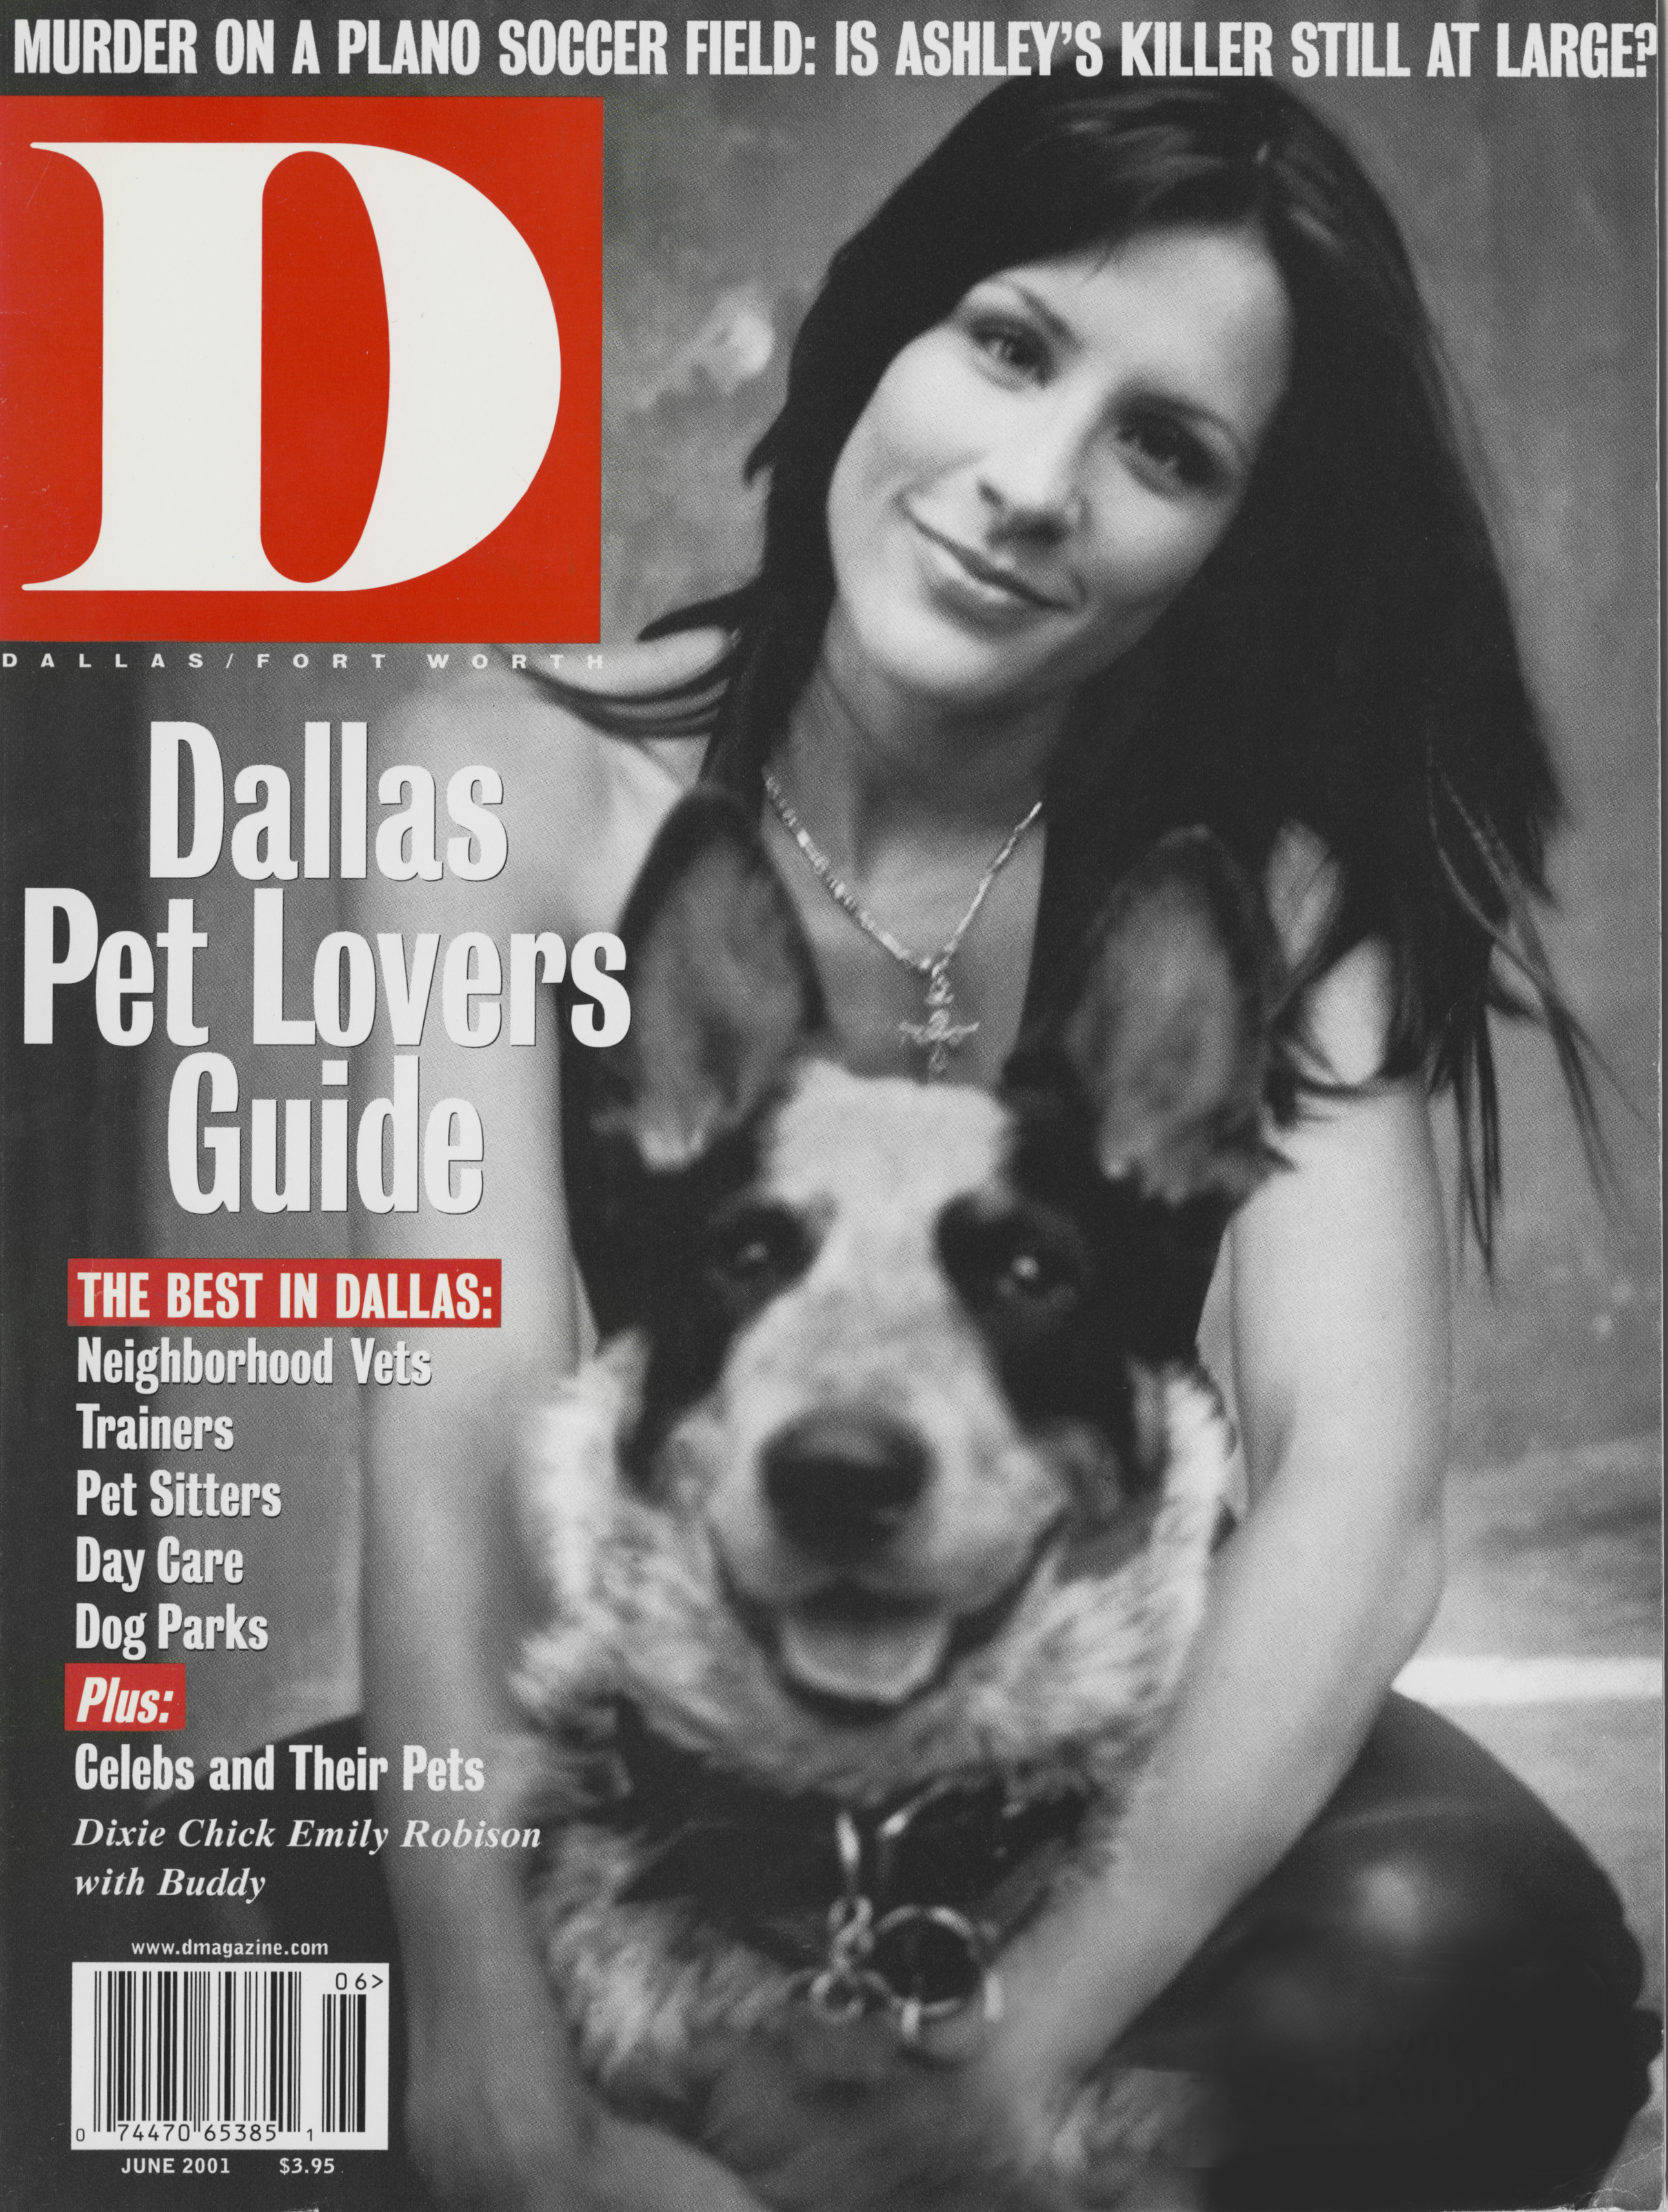 June 2001 cover